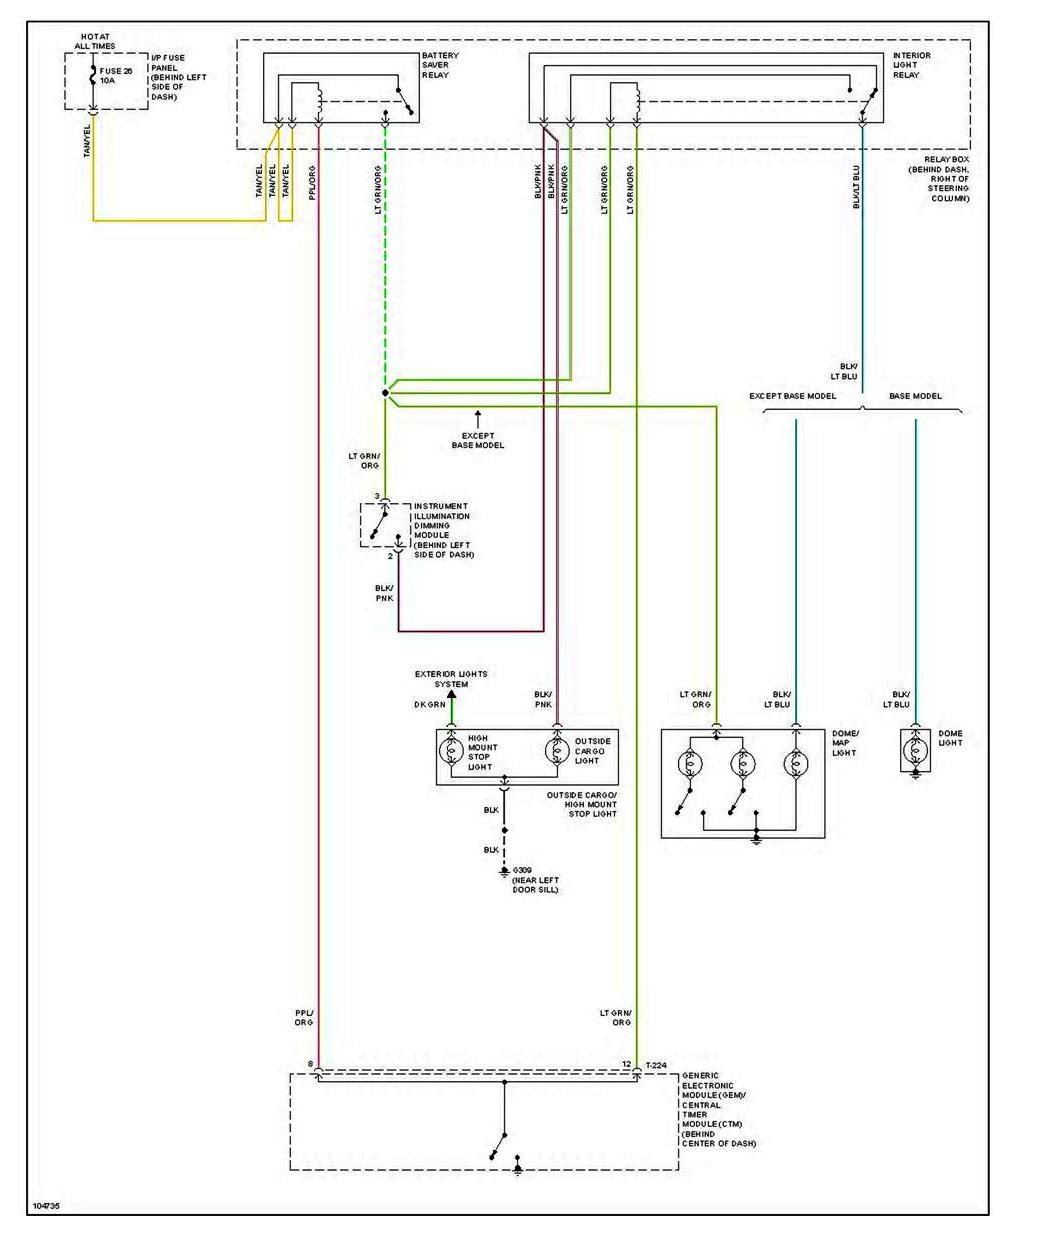 Do You Have A Wiring Diagram For A 1998 Mazda B2500 W  2 5